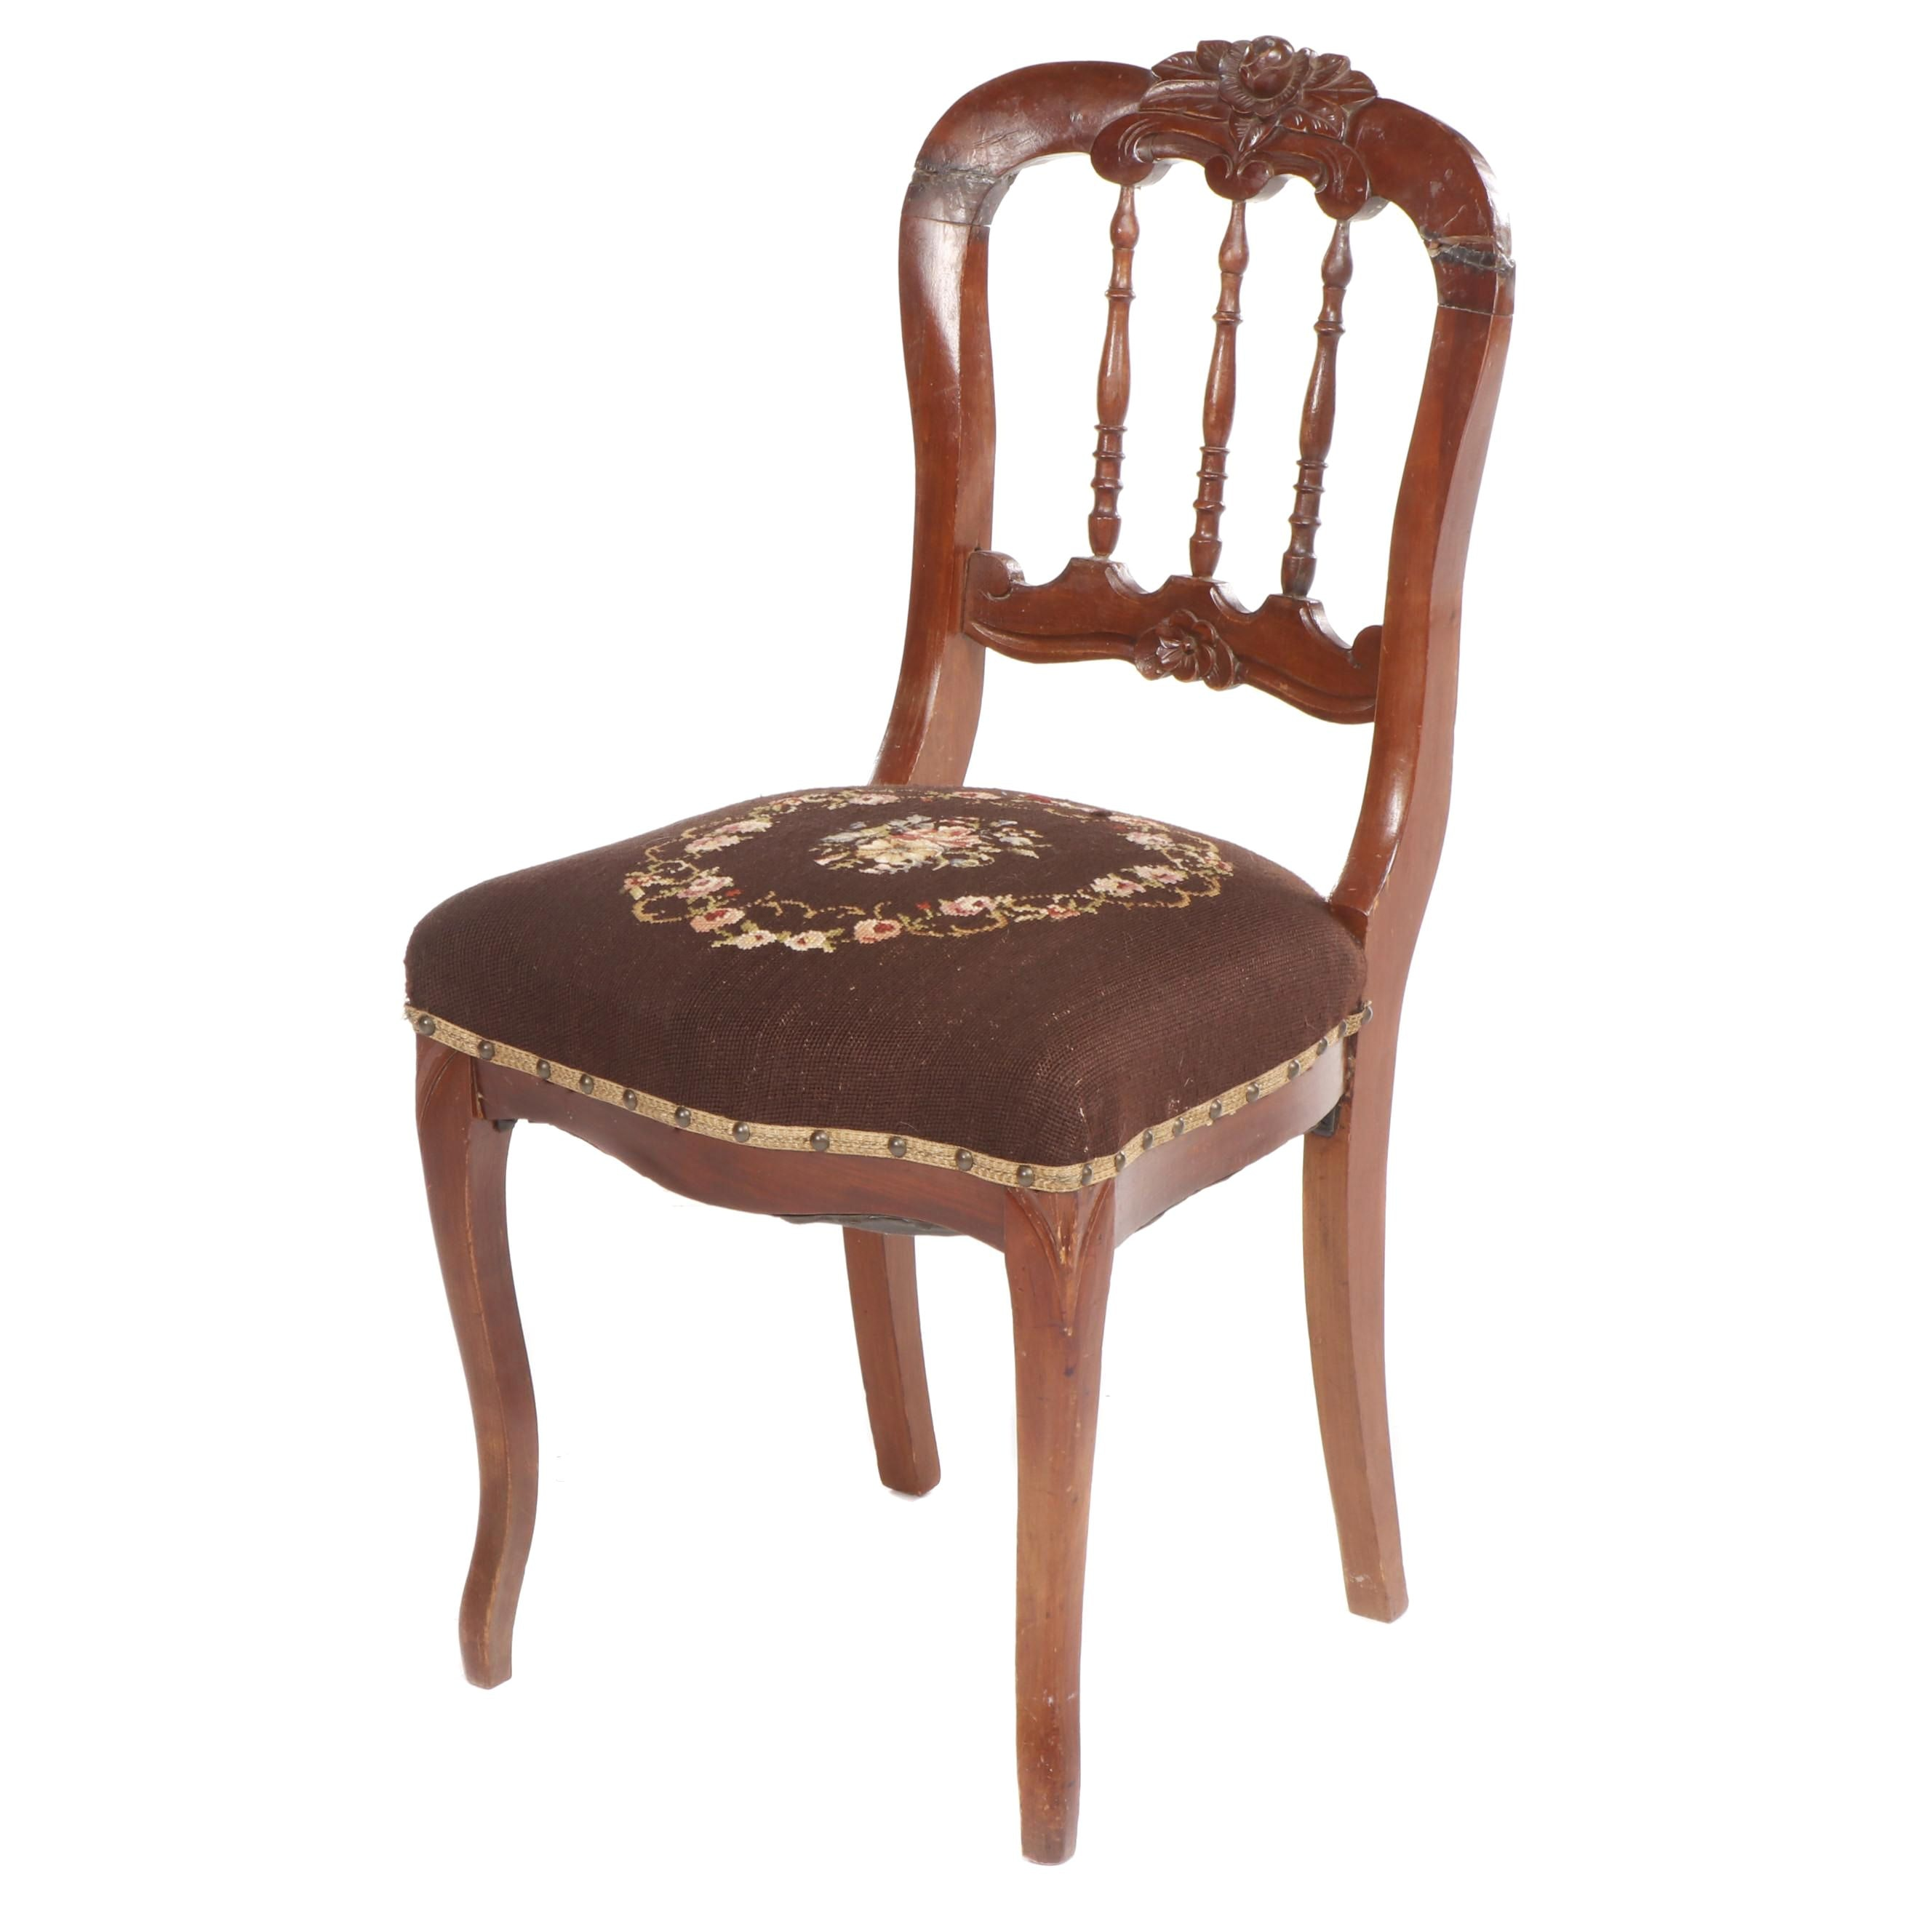 Victorian Carved Walnut Parlor Chair with Floral Needlepoint Upholstered Seat